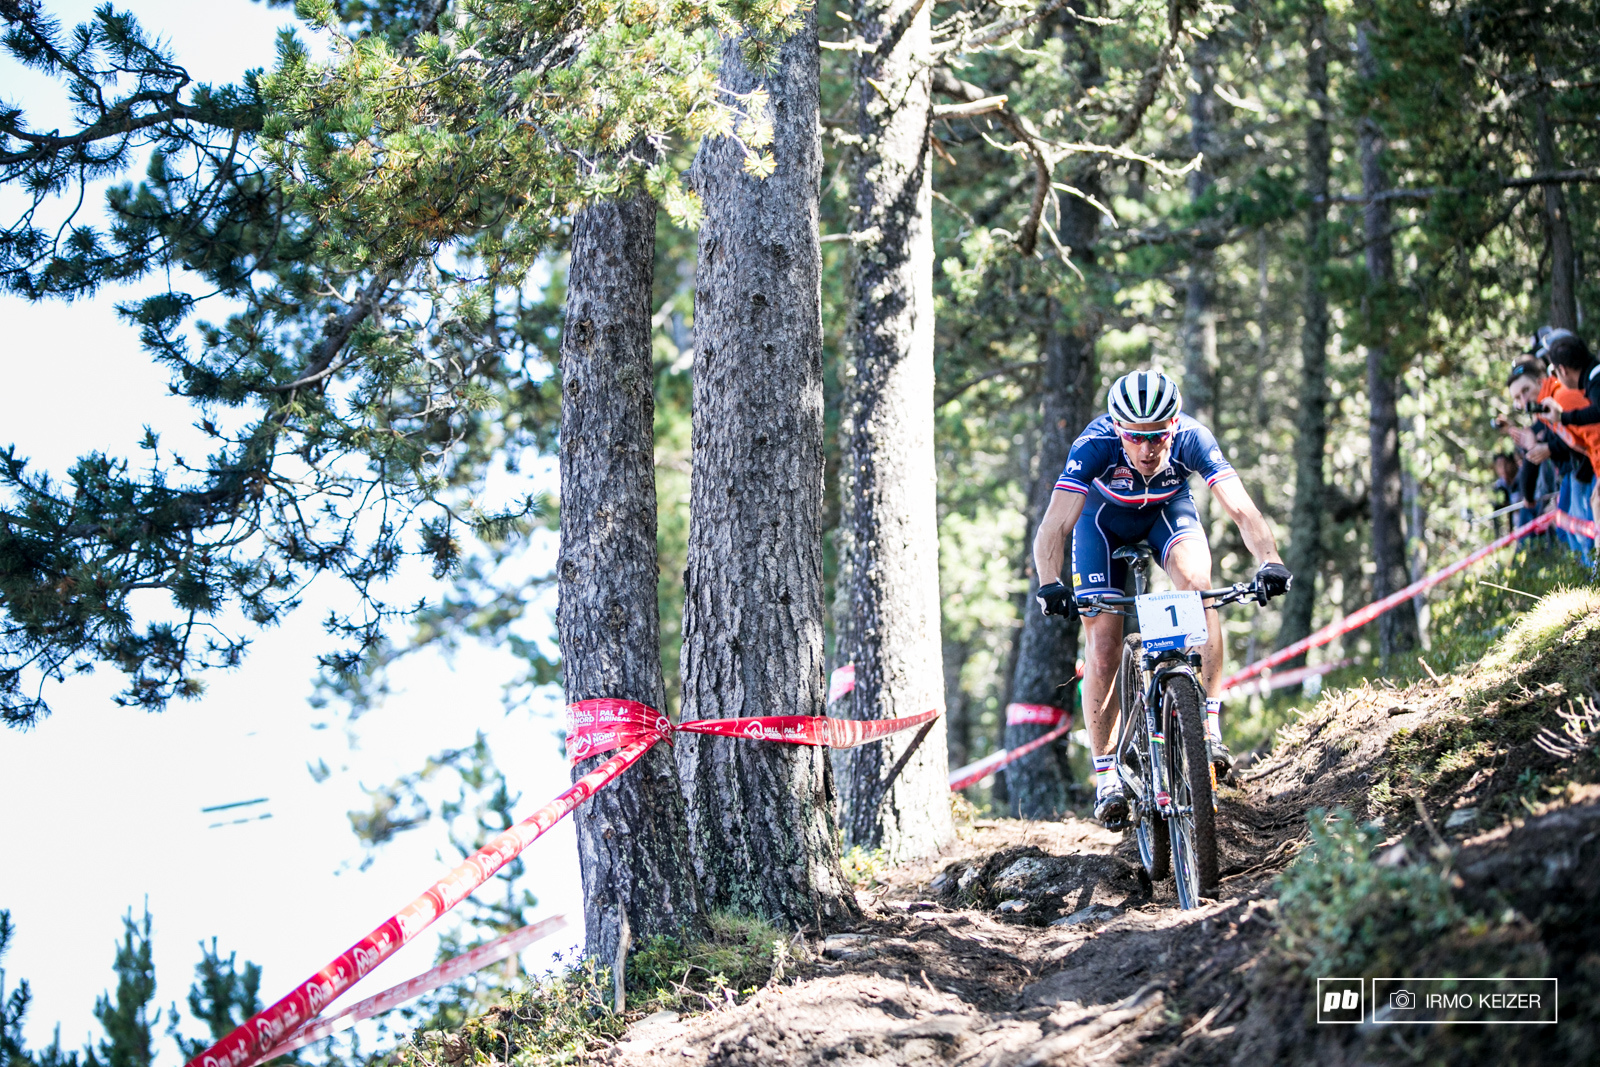 Absalon fought hard to ride away from Schurter in lap 3 4 and 5. Schurter never lost sight and managed to claw back.